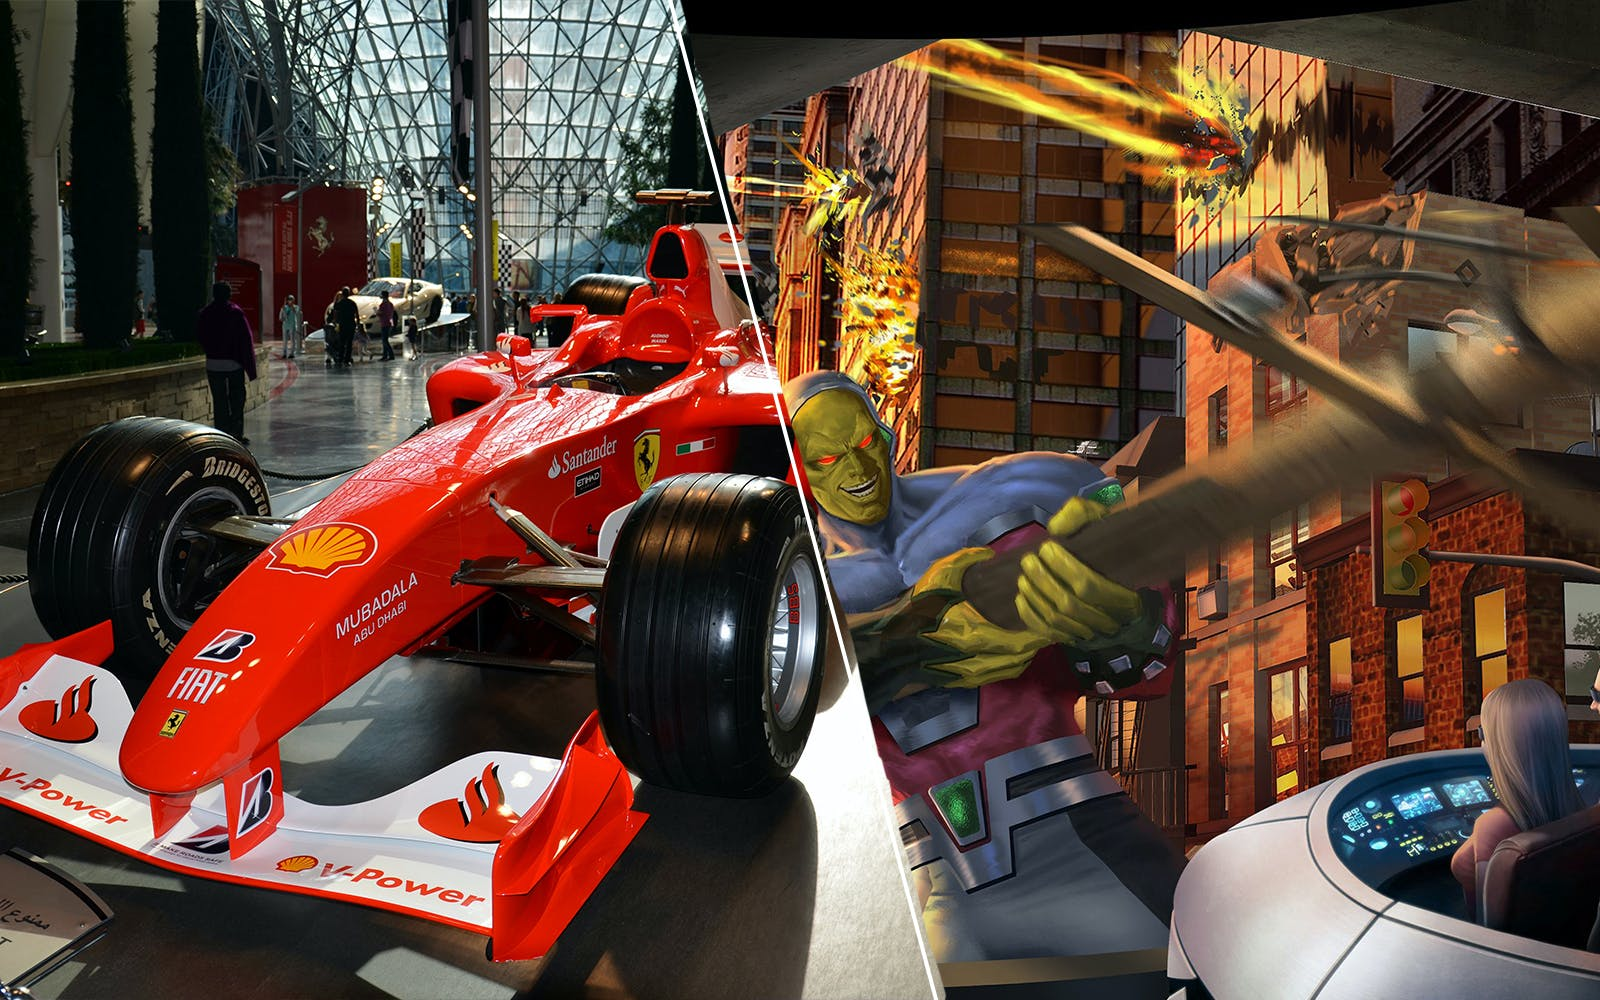 Warner Bros. World and Ferrari World